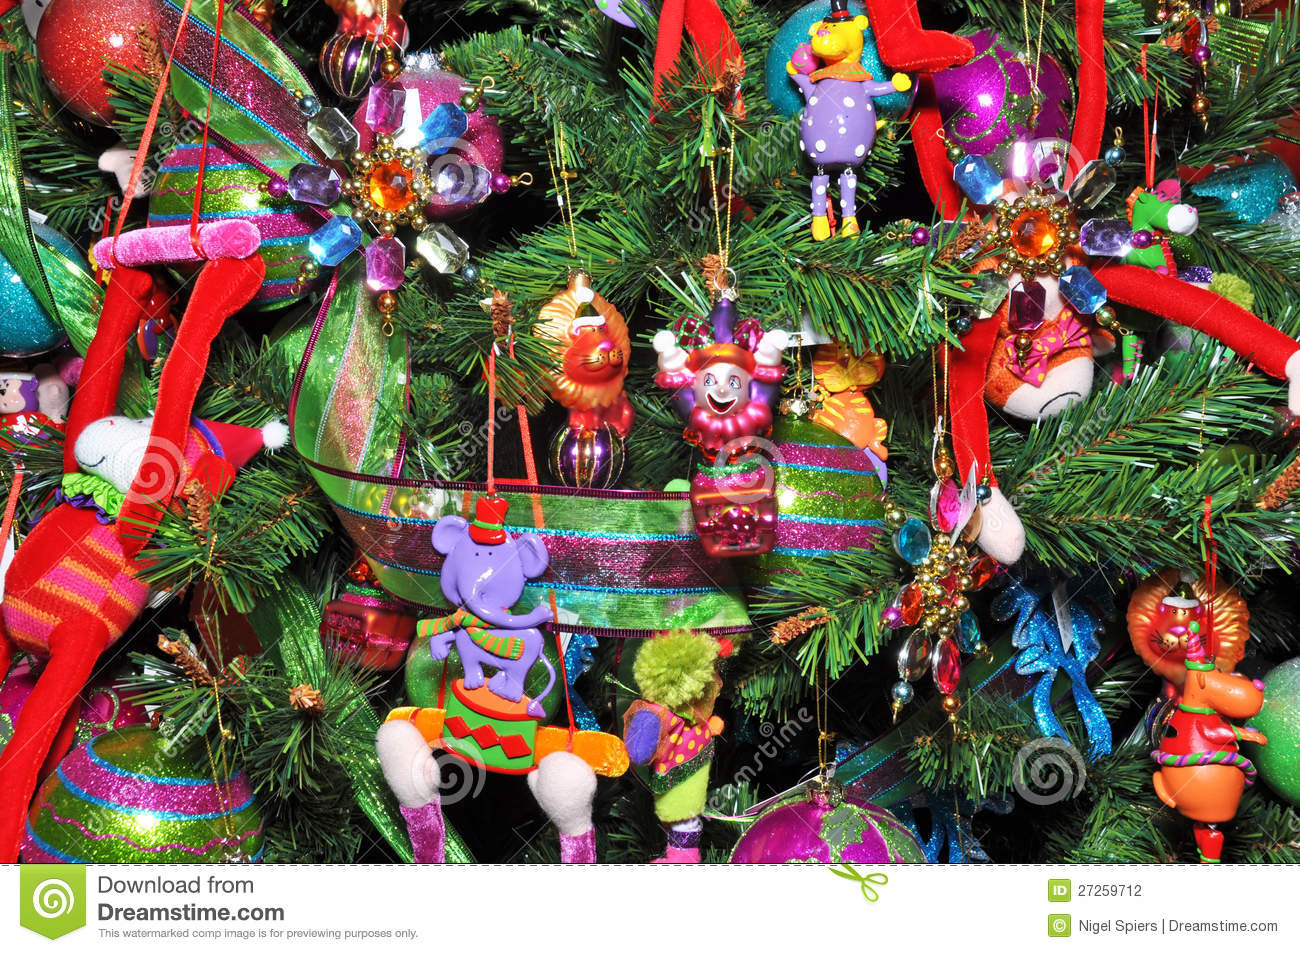 Kids Christmas Toy : Christmas tree decorated with children s toys stock photo